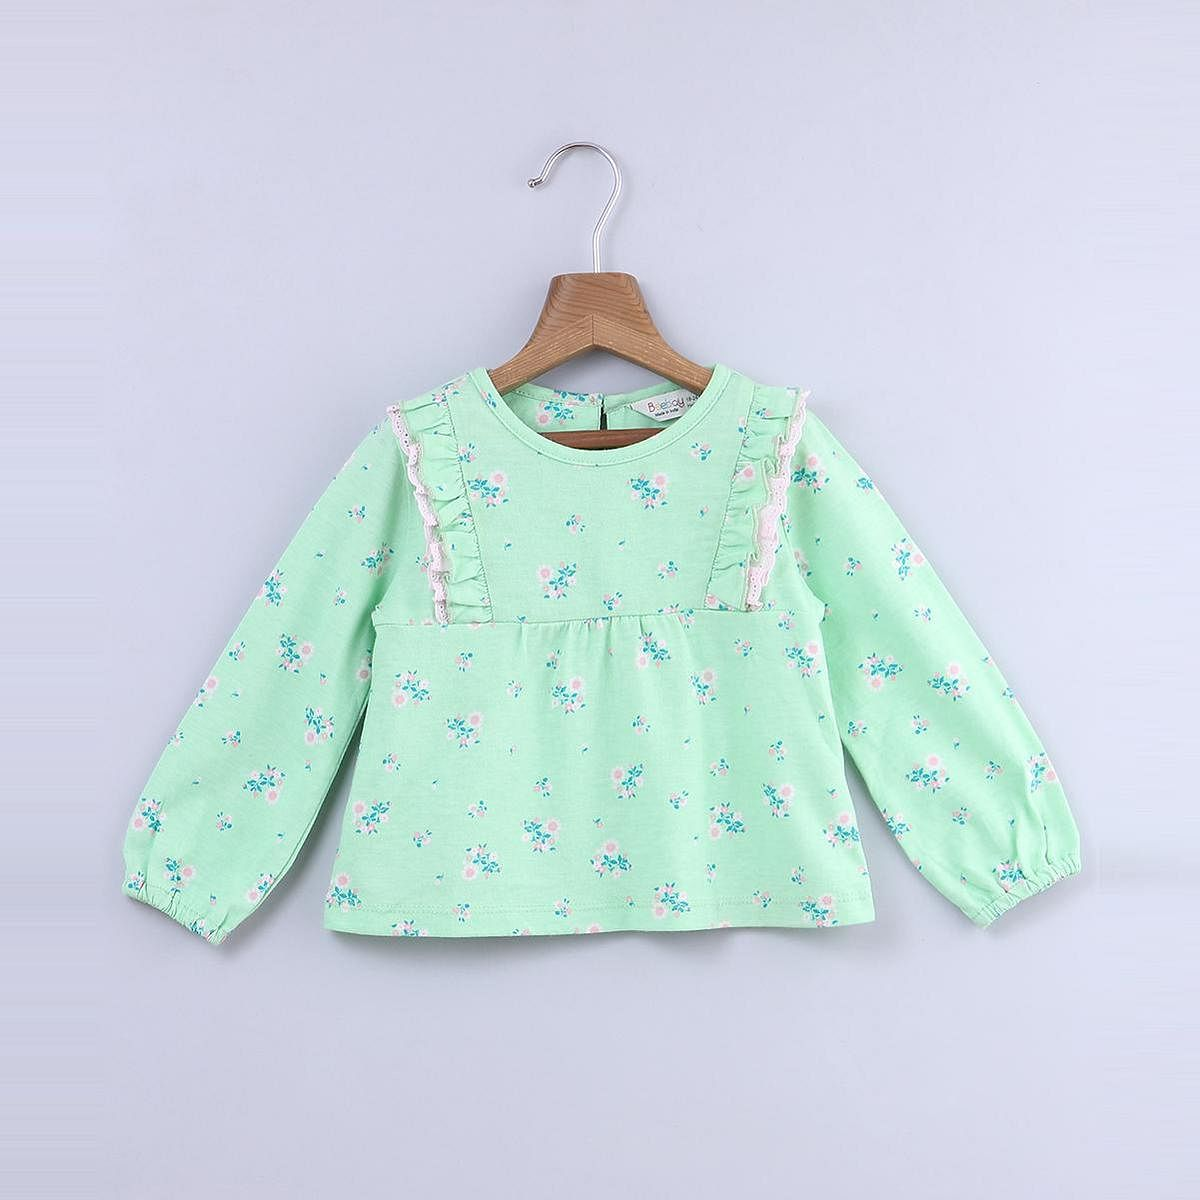 Beebay - Green Colored Ditsy Floral Frill Cotton Top For Kids Girls